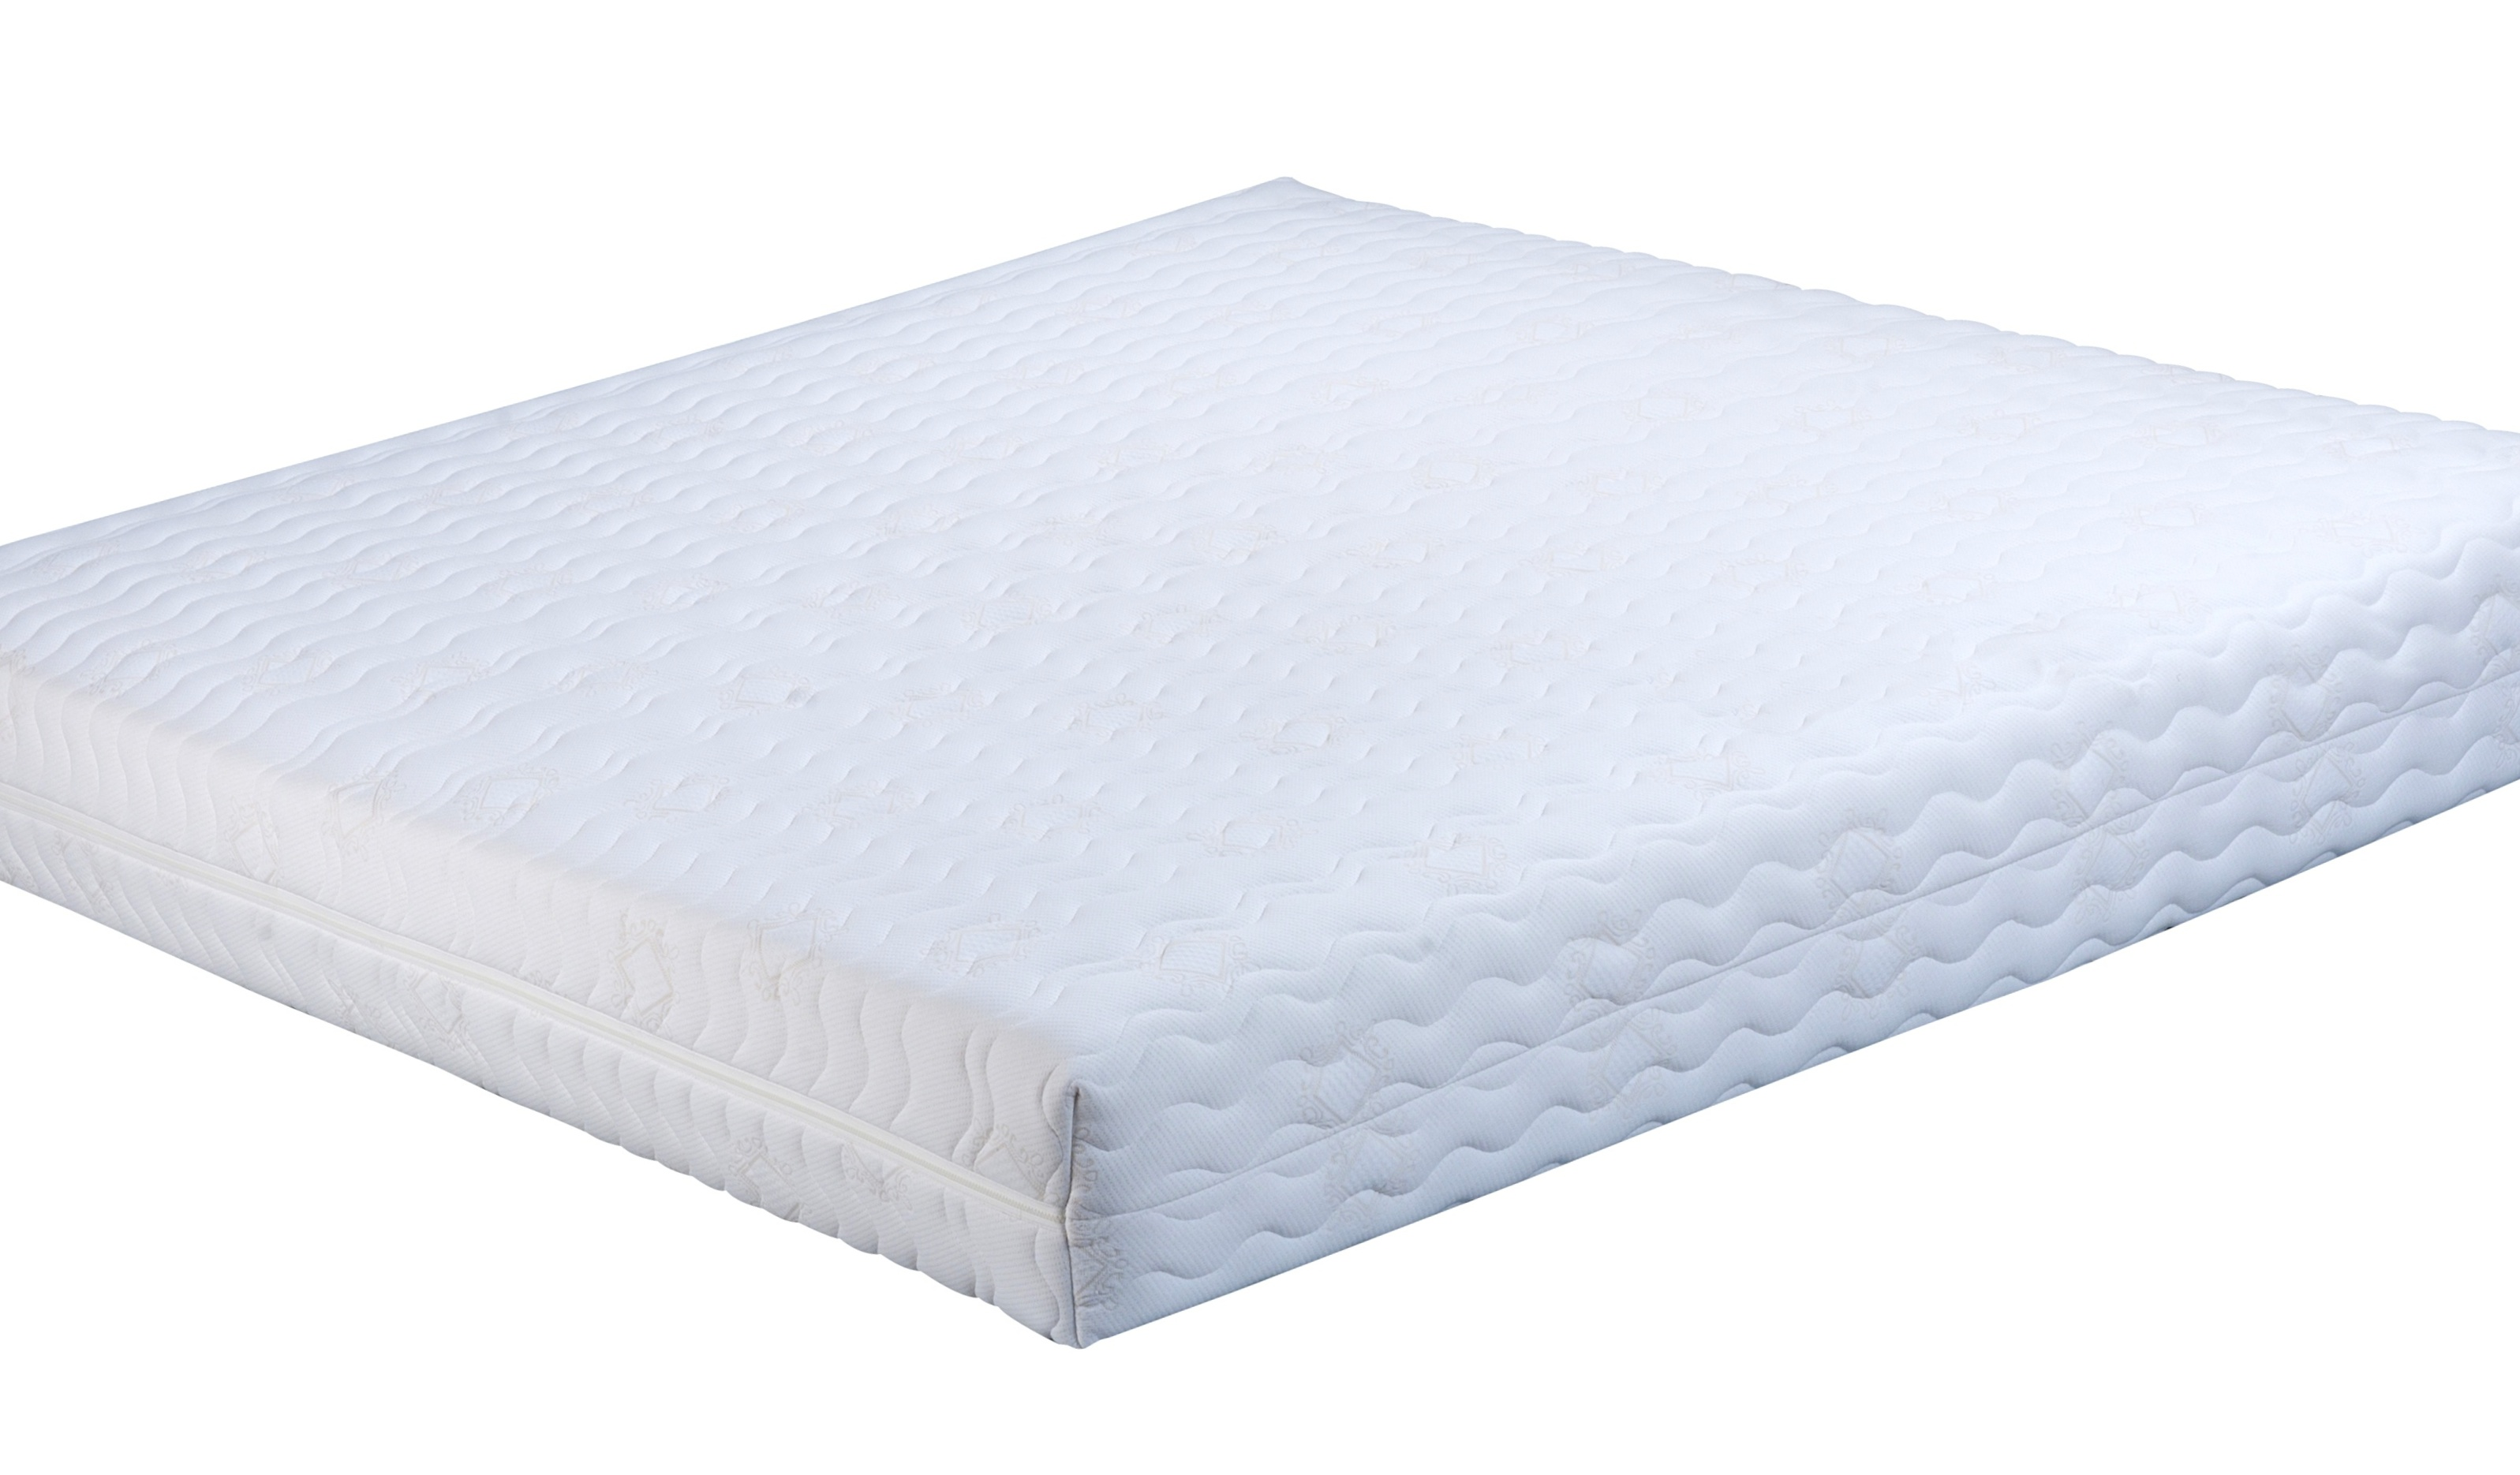 Rubber Mattress Mattress Covers Foam Rubber Cityfoam Rubber City